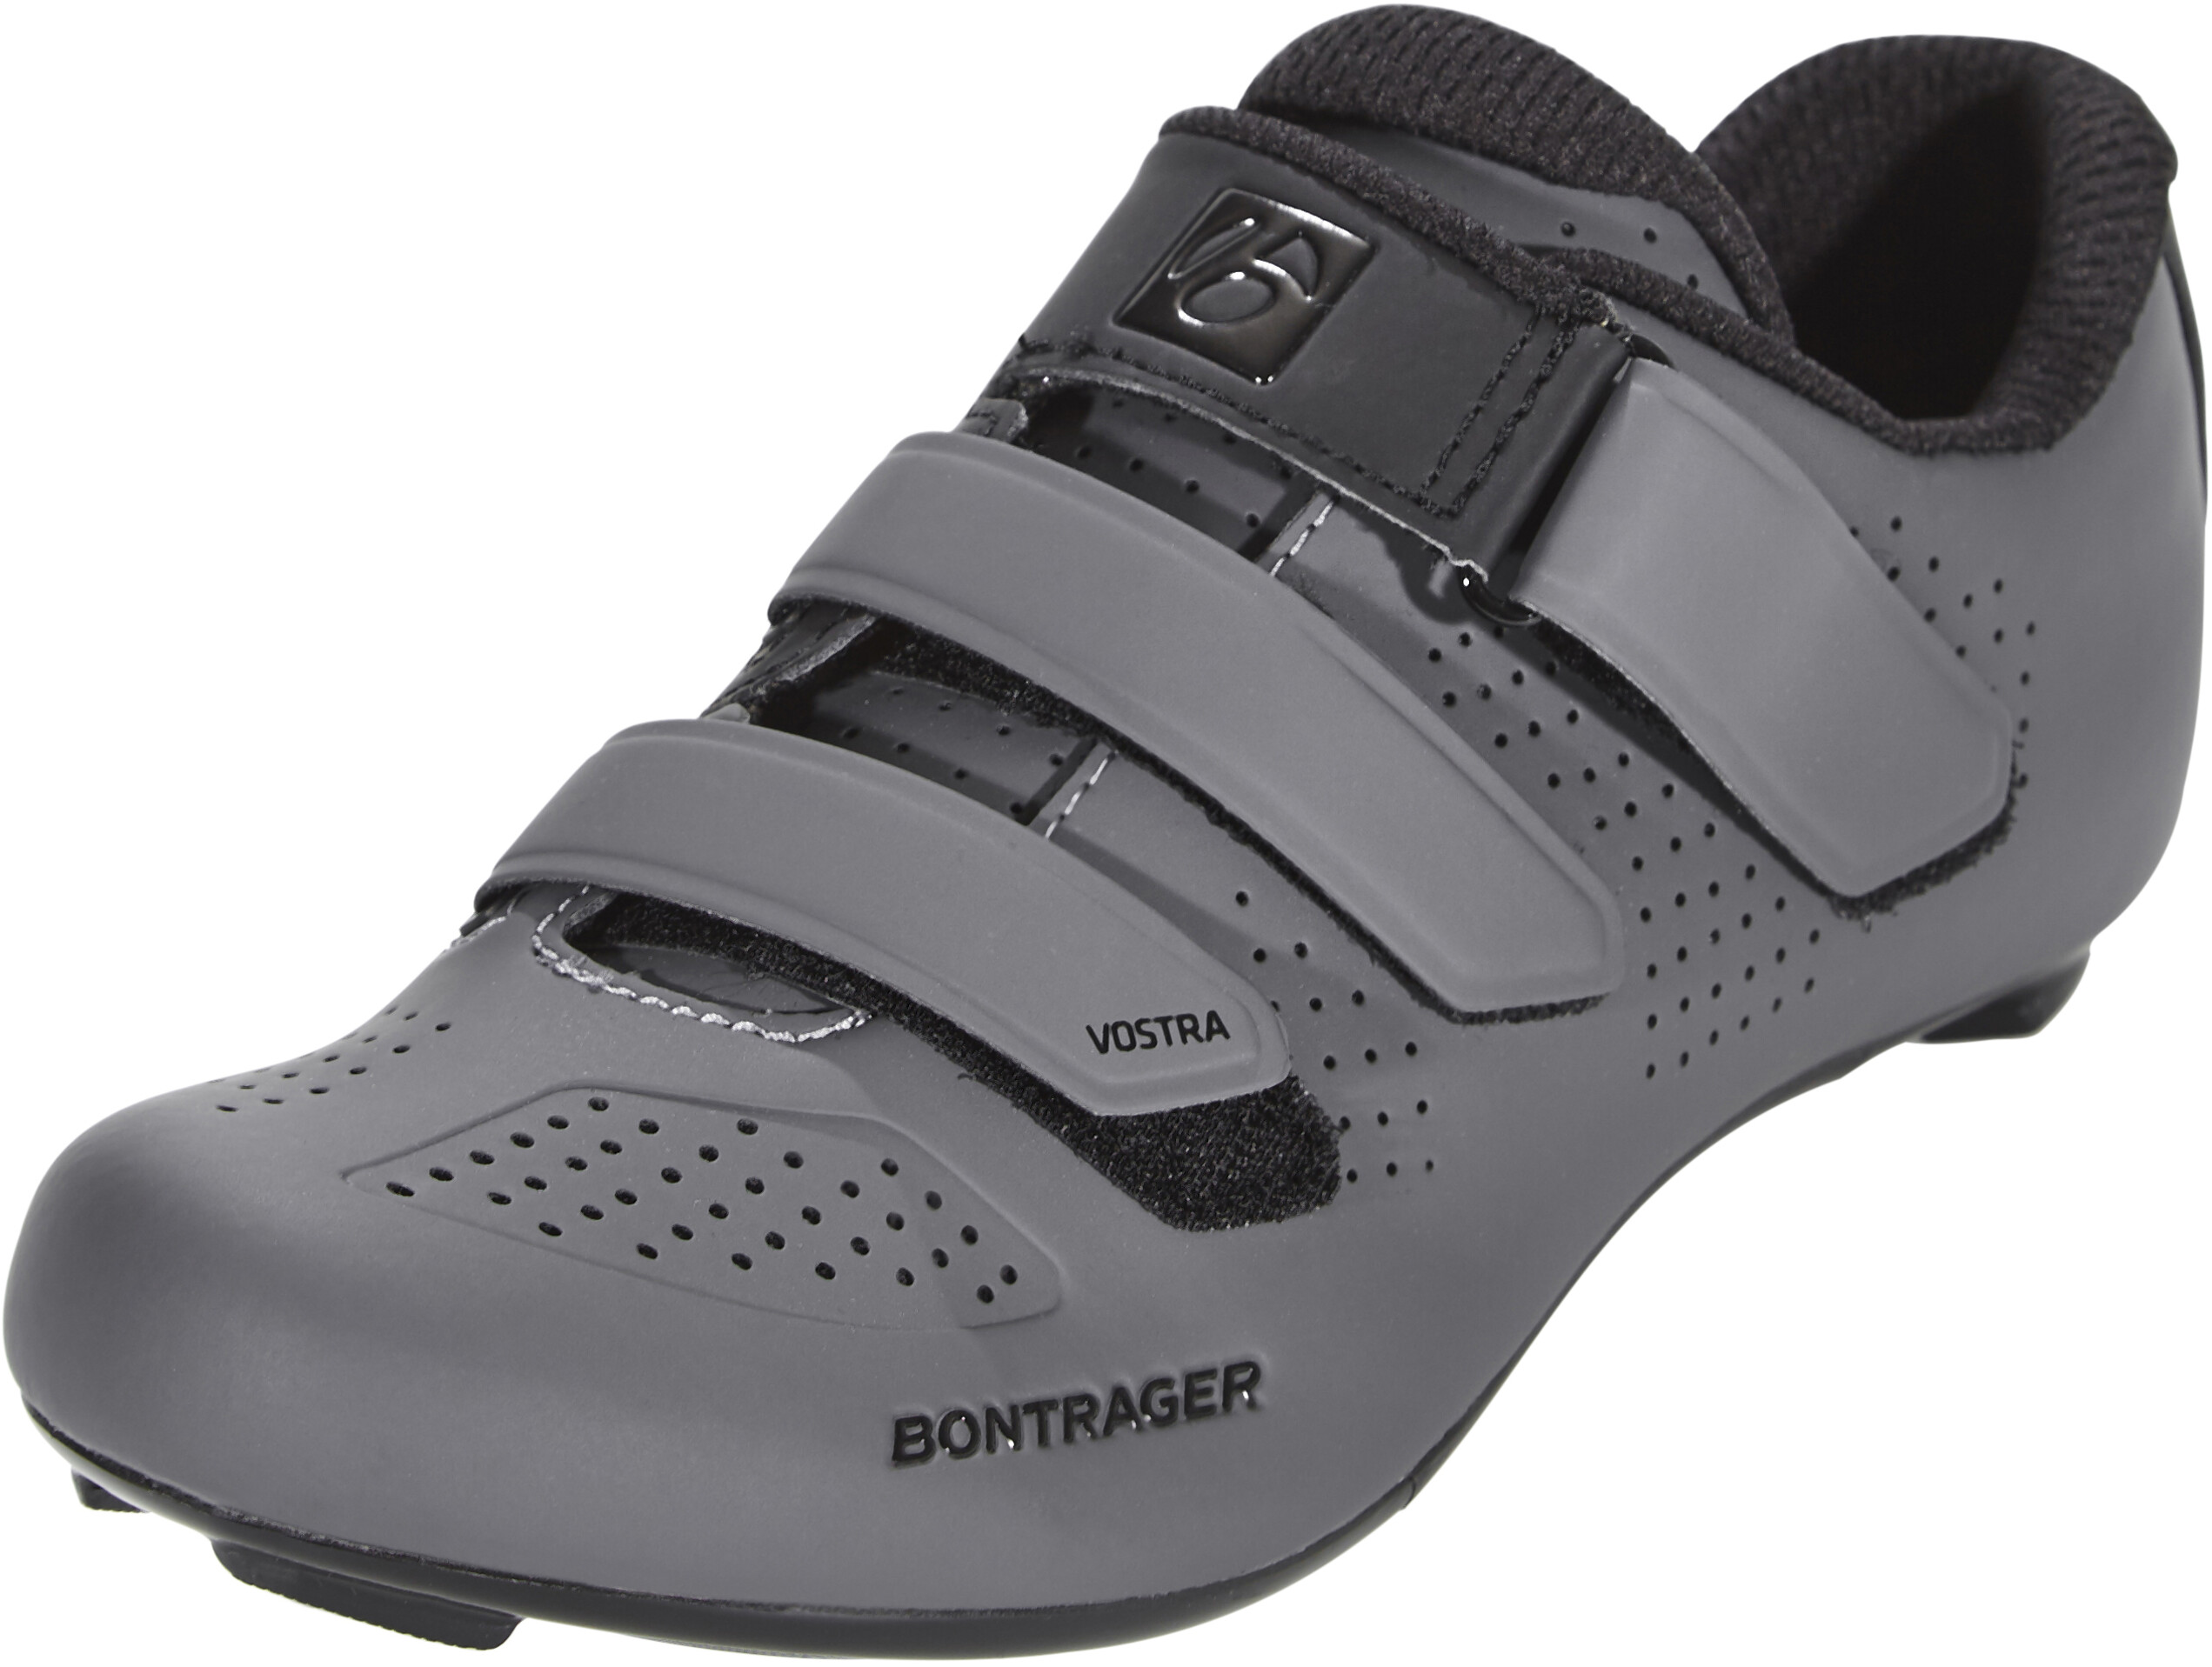 Bontrager And Giro Shoes Size Comparison